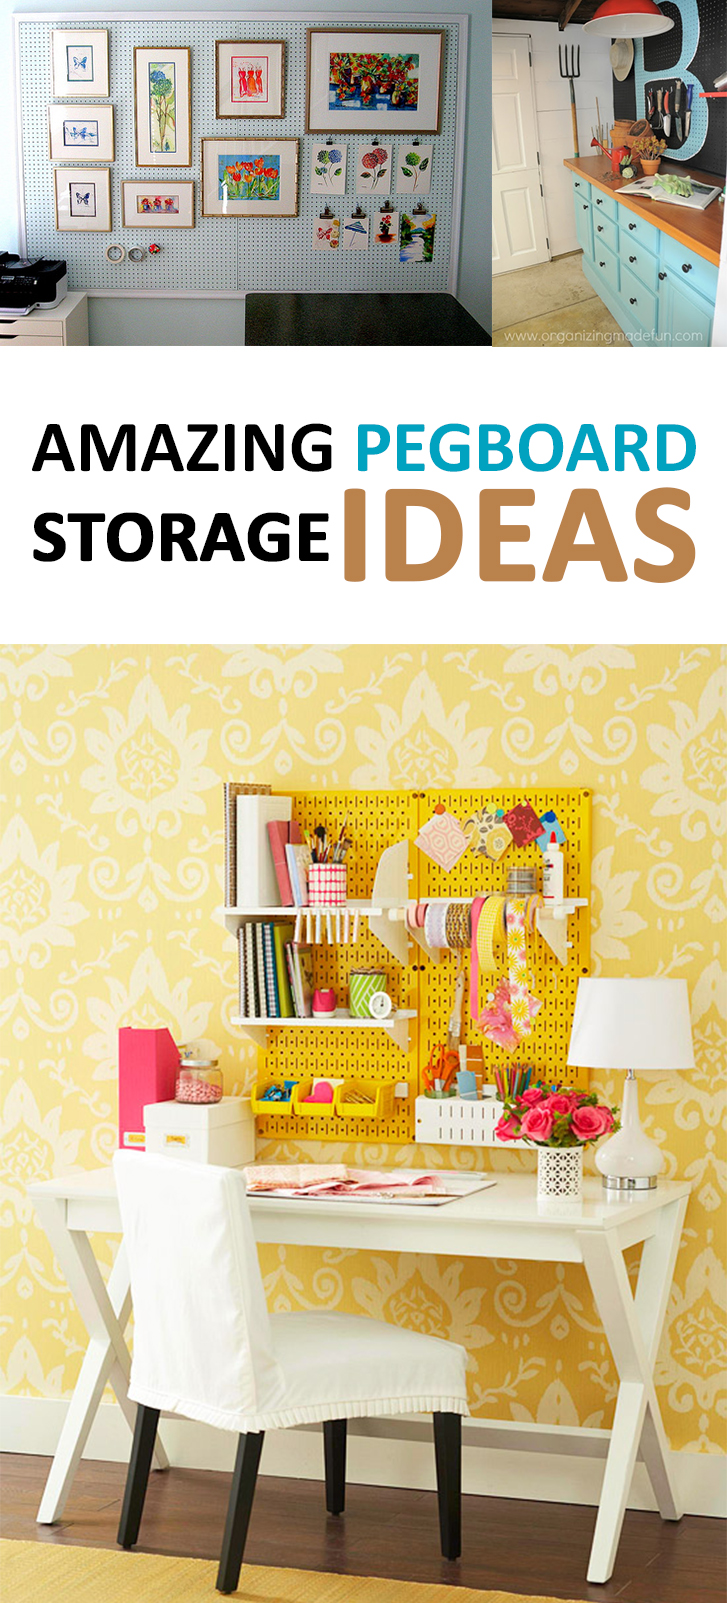 Amazing Pegboard Storage Ideas & Amazing Pegboard Storage ideas -